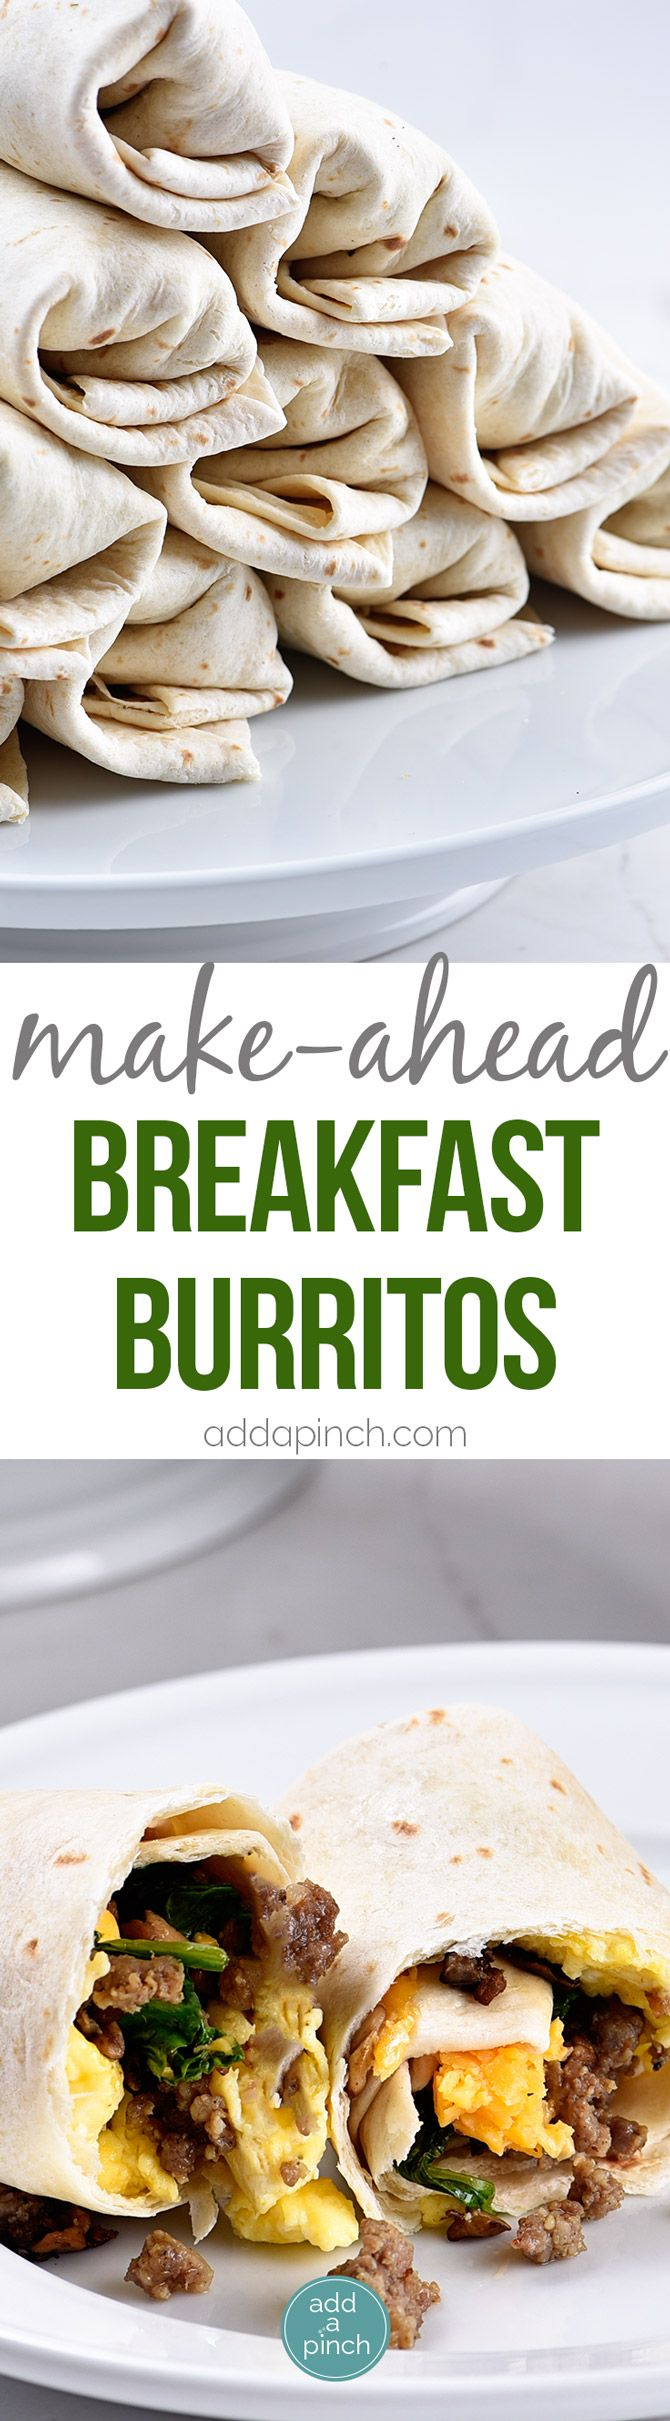 Make-Ahead Breakfast Burritos Recipe - Stock your freezer with these easy…